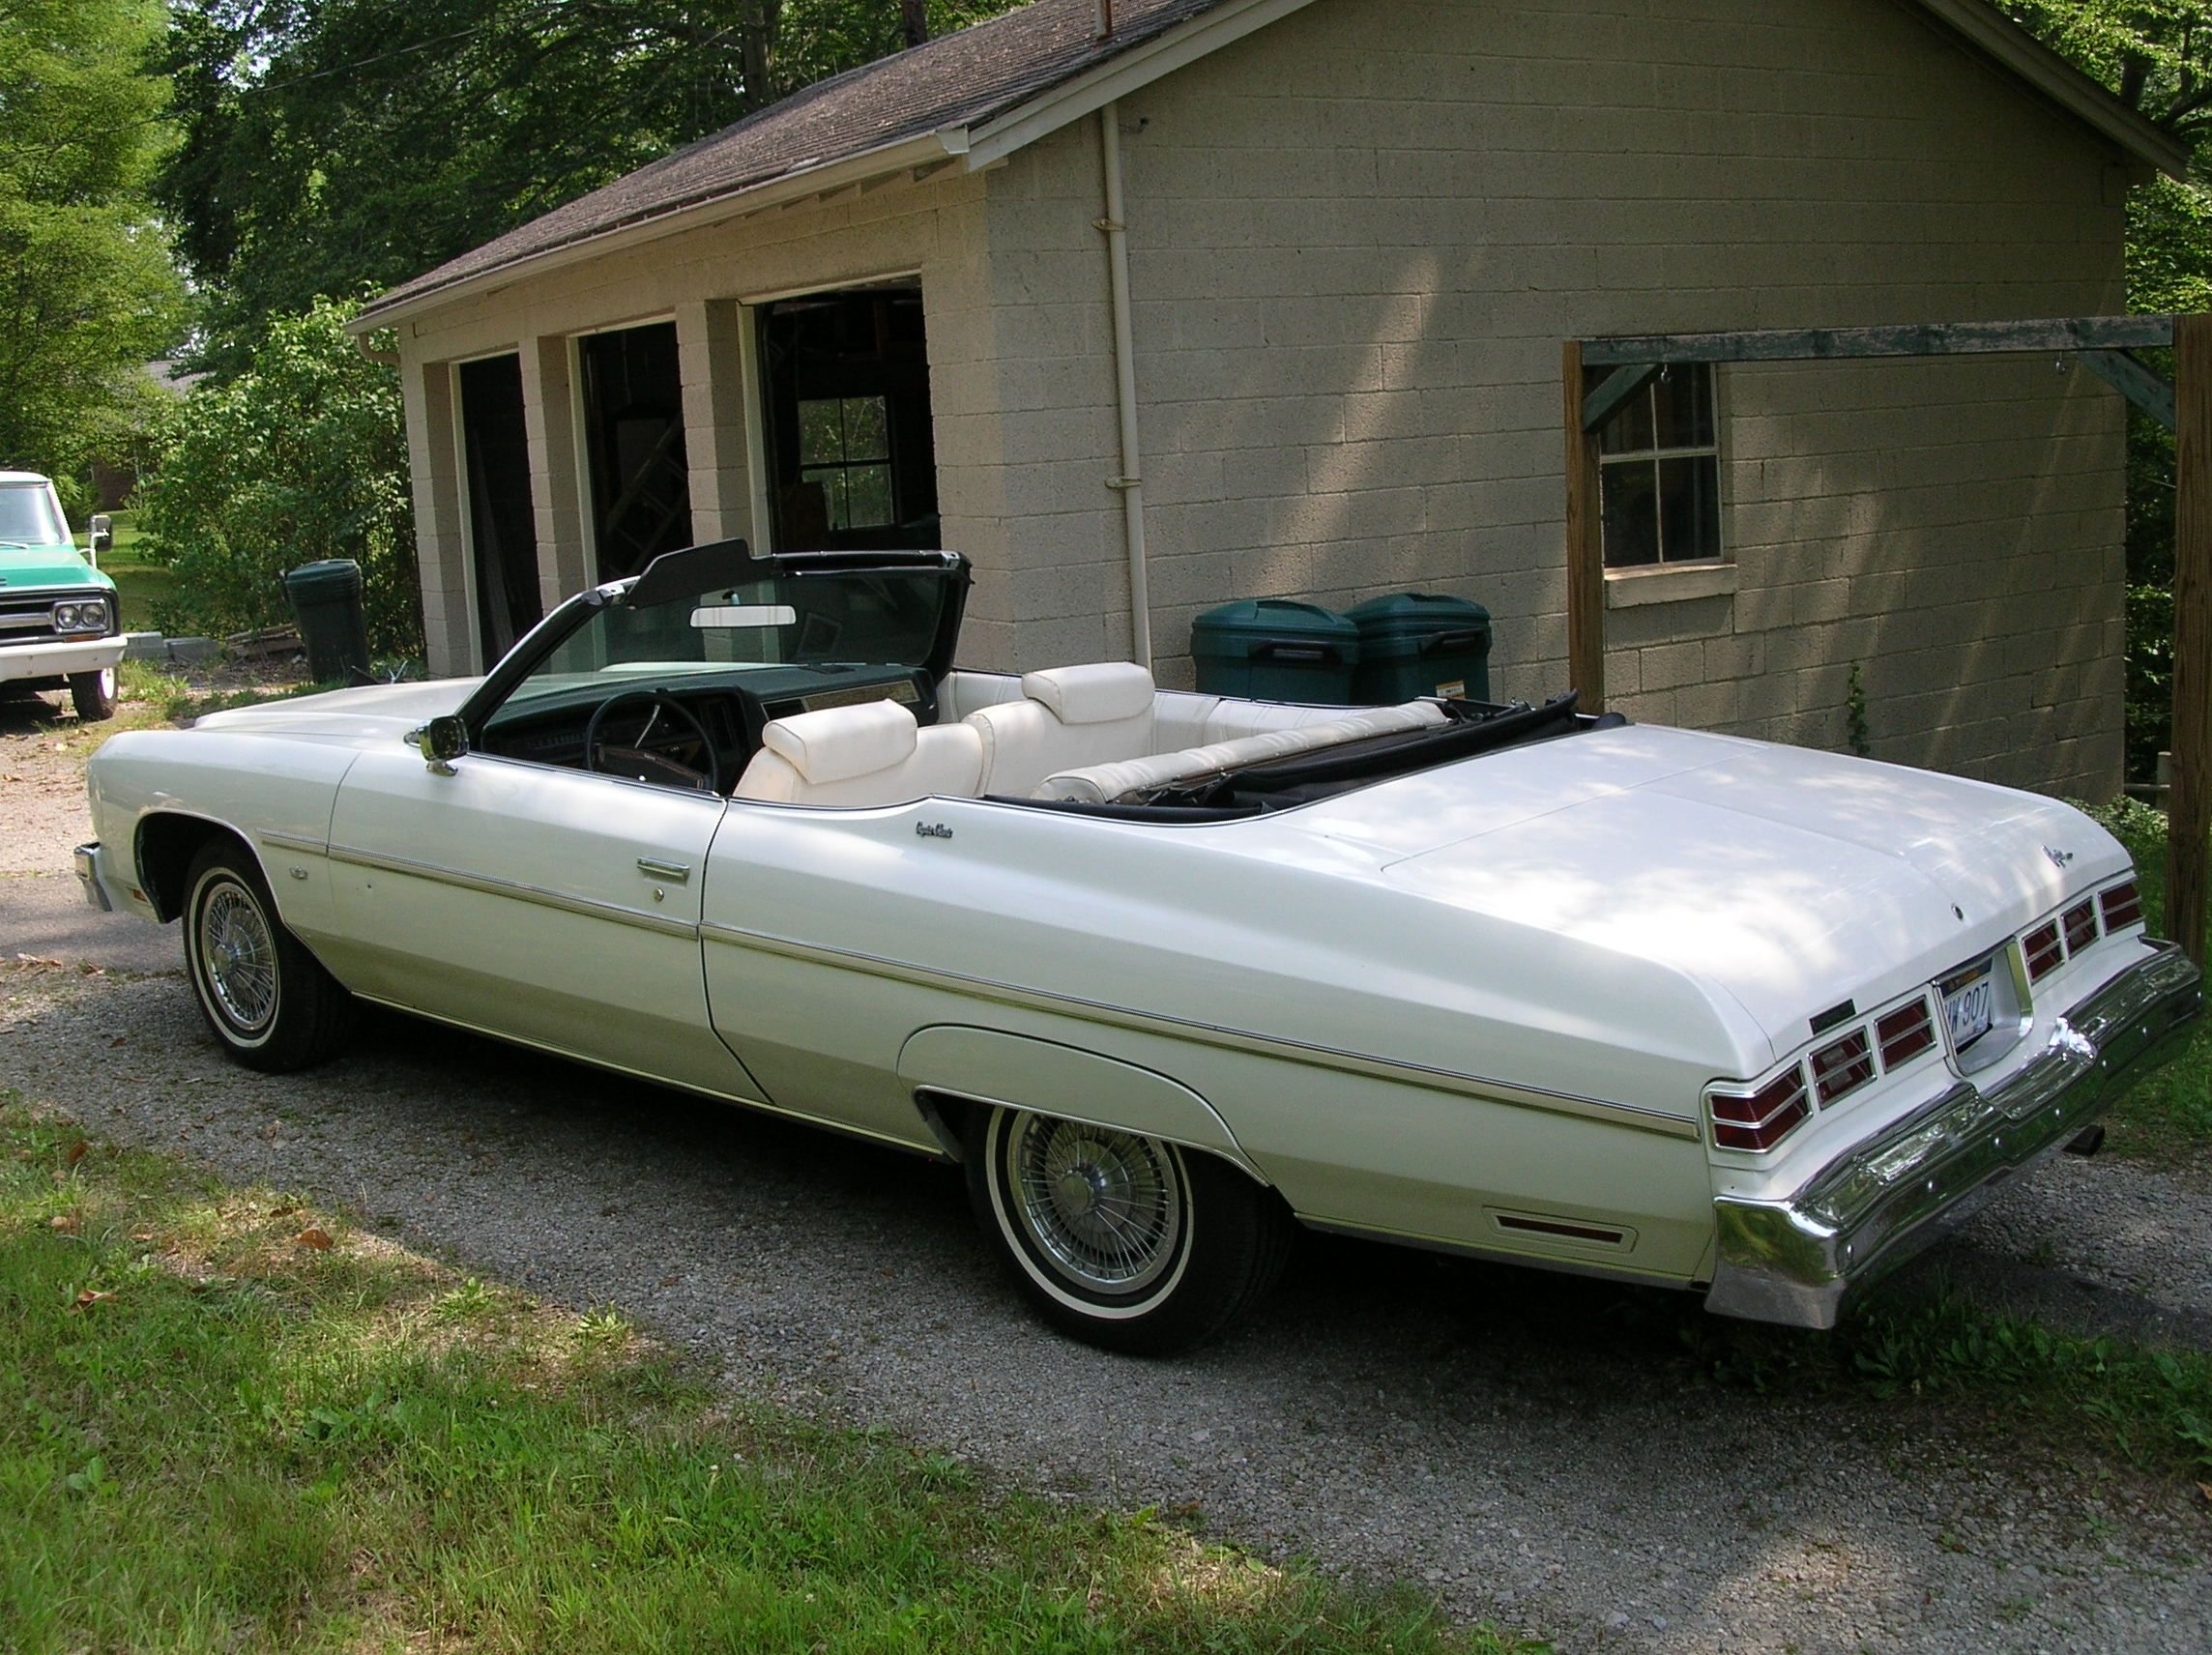 1973 Impala Convertible For Sale Craigslist | Wiring Library